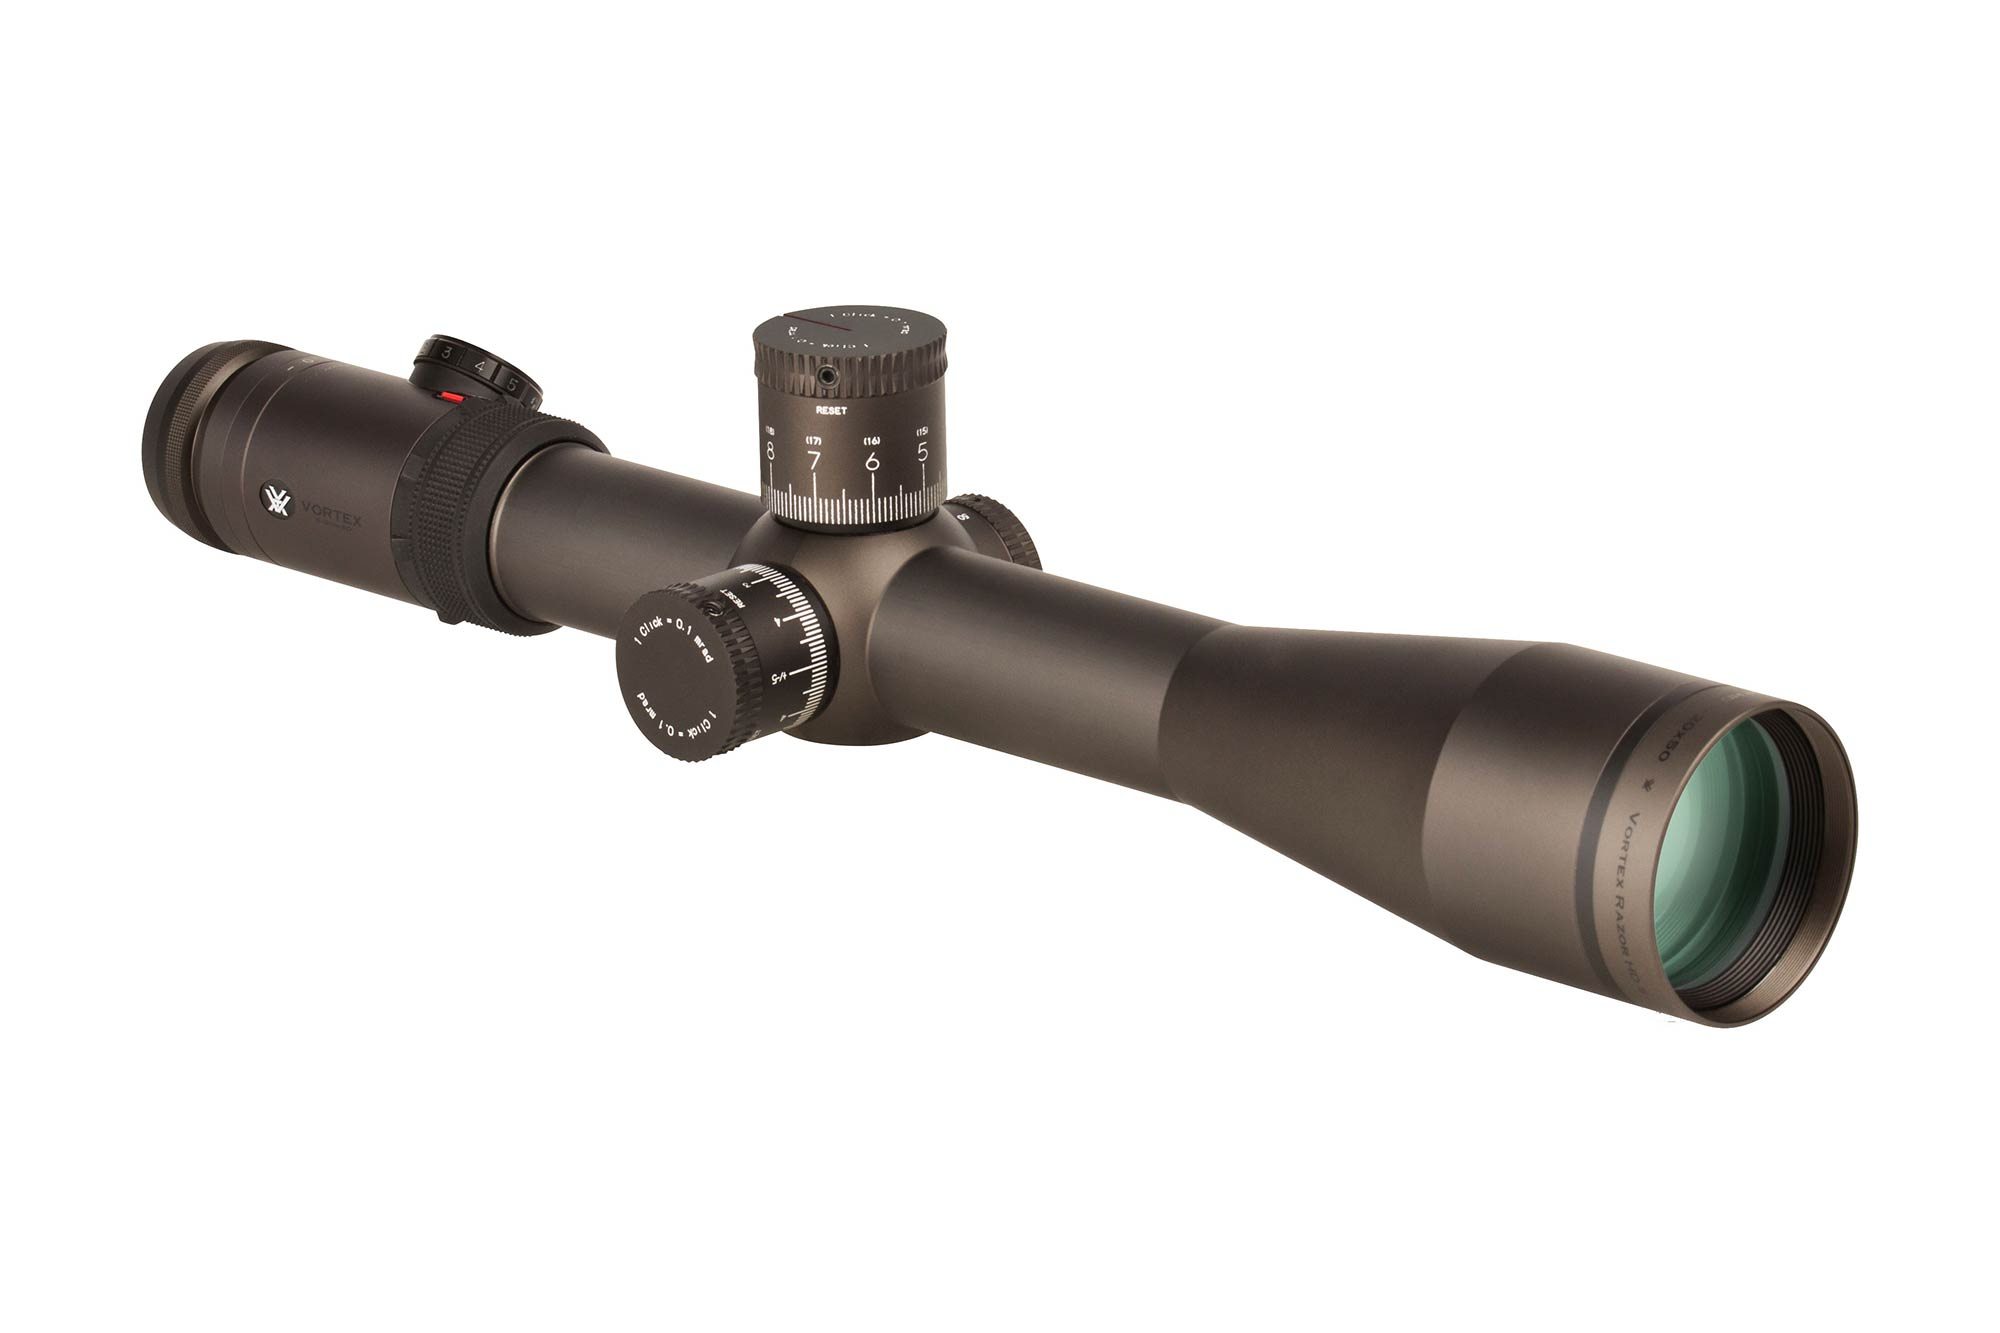 rife scope